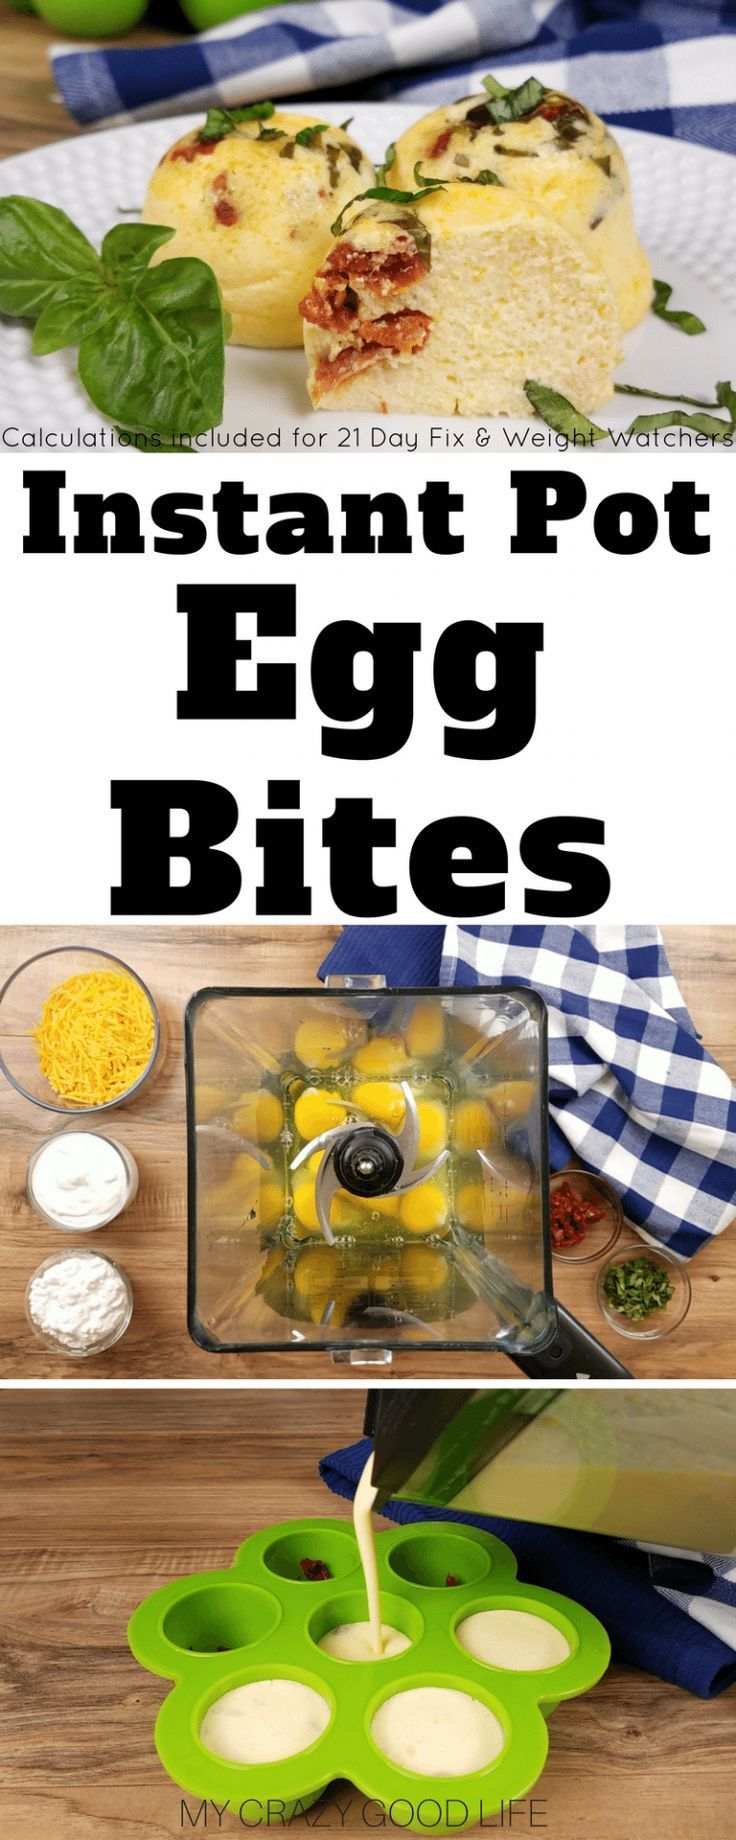 These copycat Starbucks Egg Bites are so delicious and easy to make in your Instant Pot! Save a ton of money by making Starbucks egg bites at home. Starbucks Egg Bites | Starbucks Egg Bites Recipe | Sous Vide Egg Bites | Instant Pot Egg Bites | Weight Wat